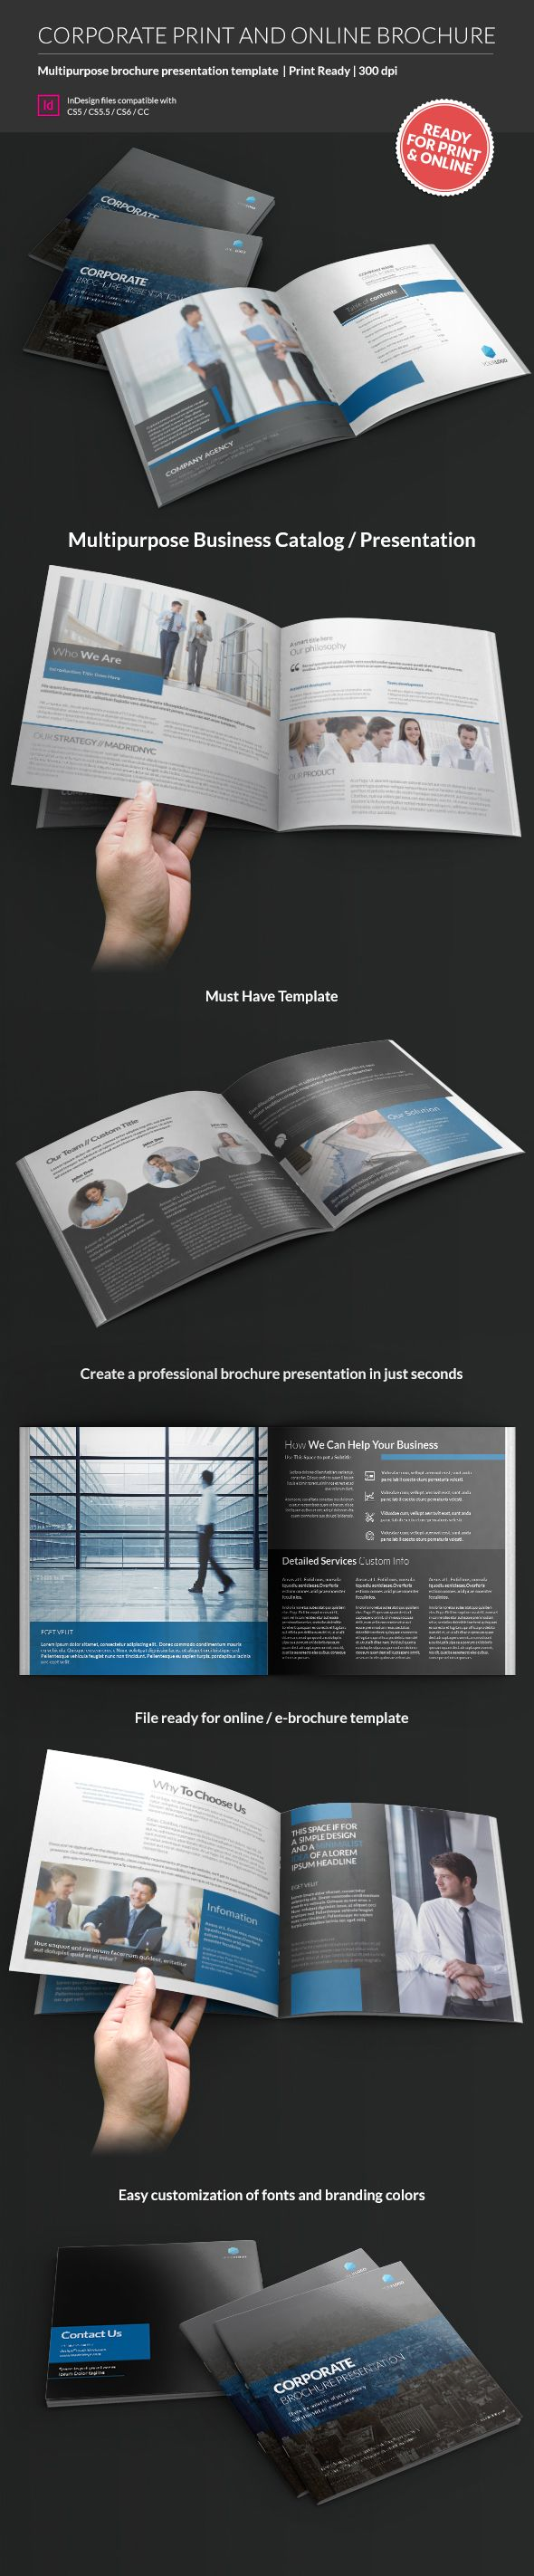 Do you have a brochure for your bussines? #Design #template #brochure